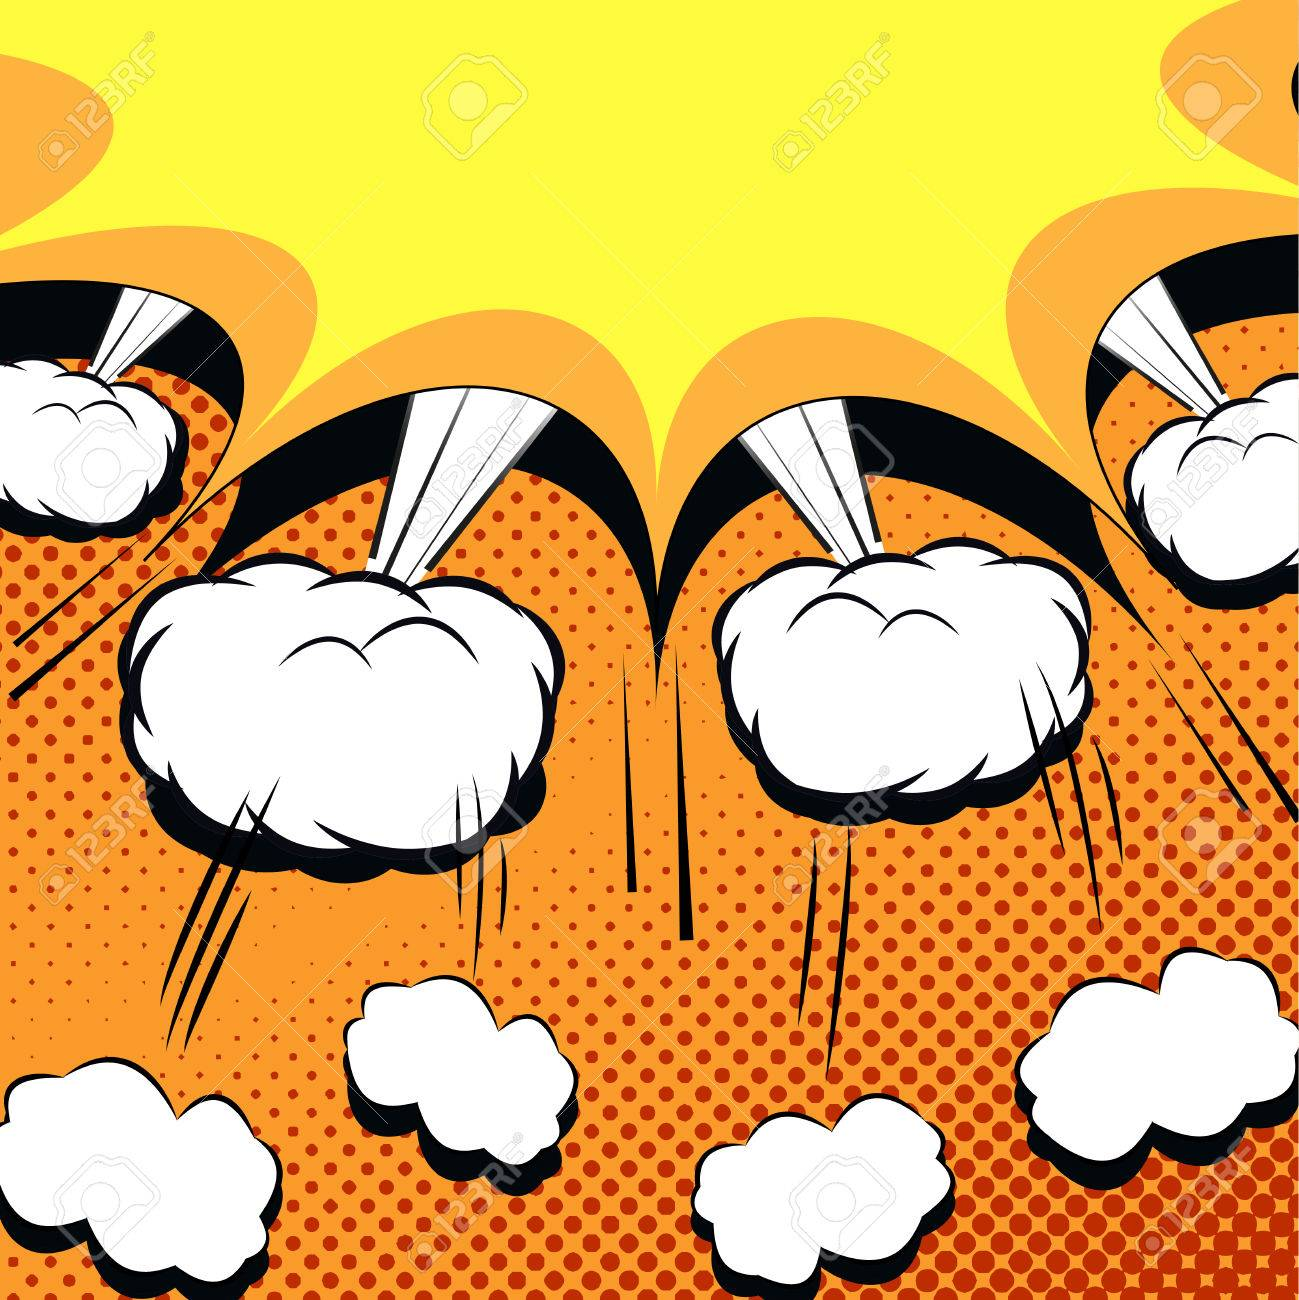 comic book cartoon with explosion vector illustration with exploded